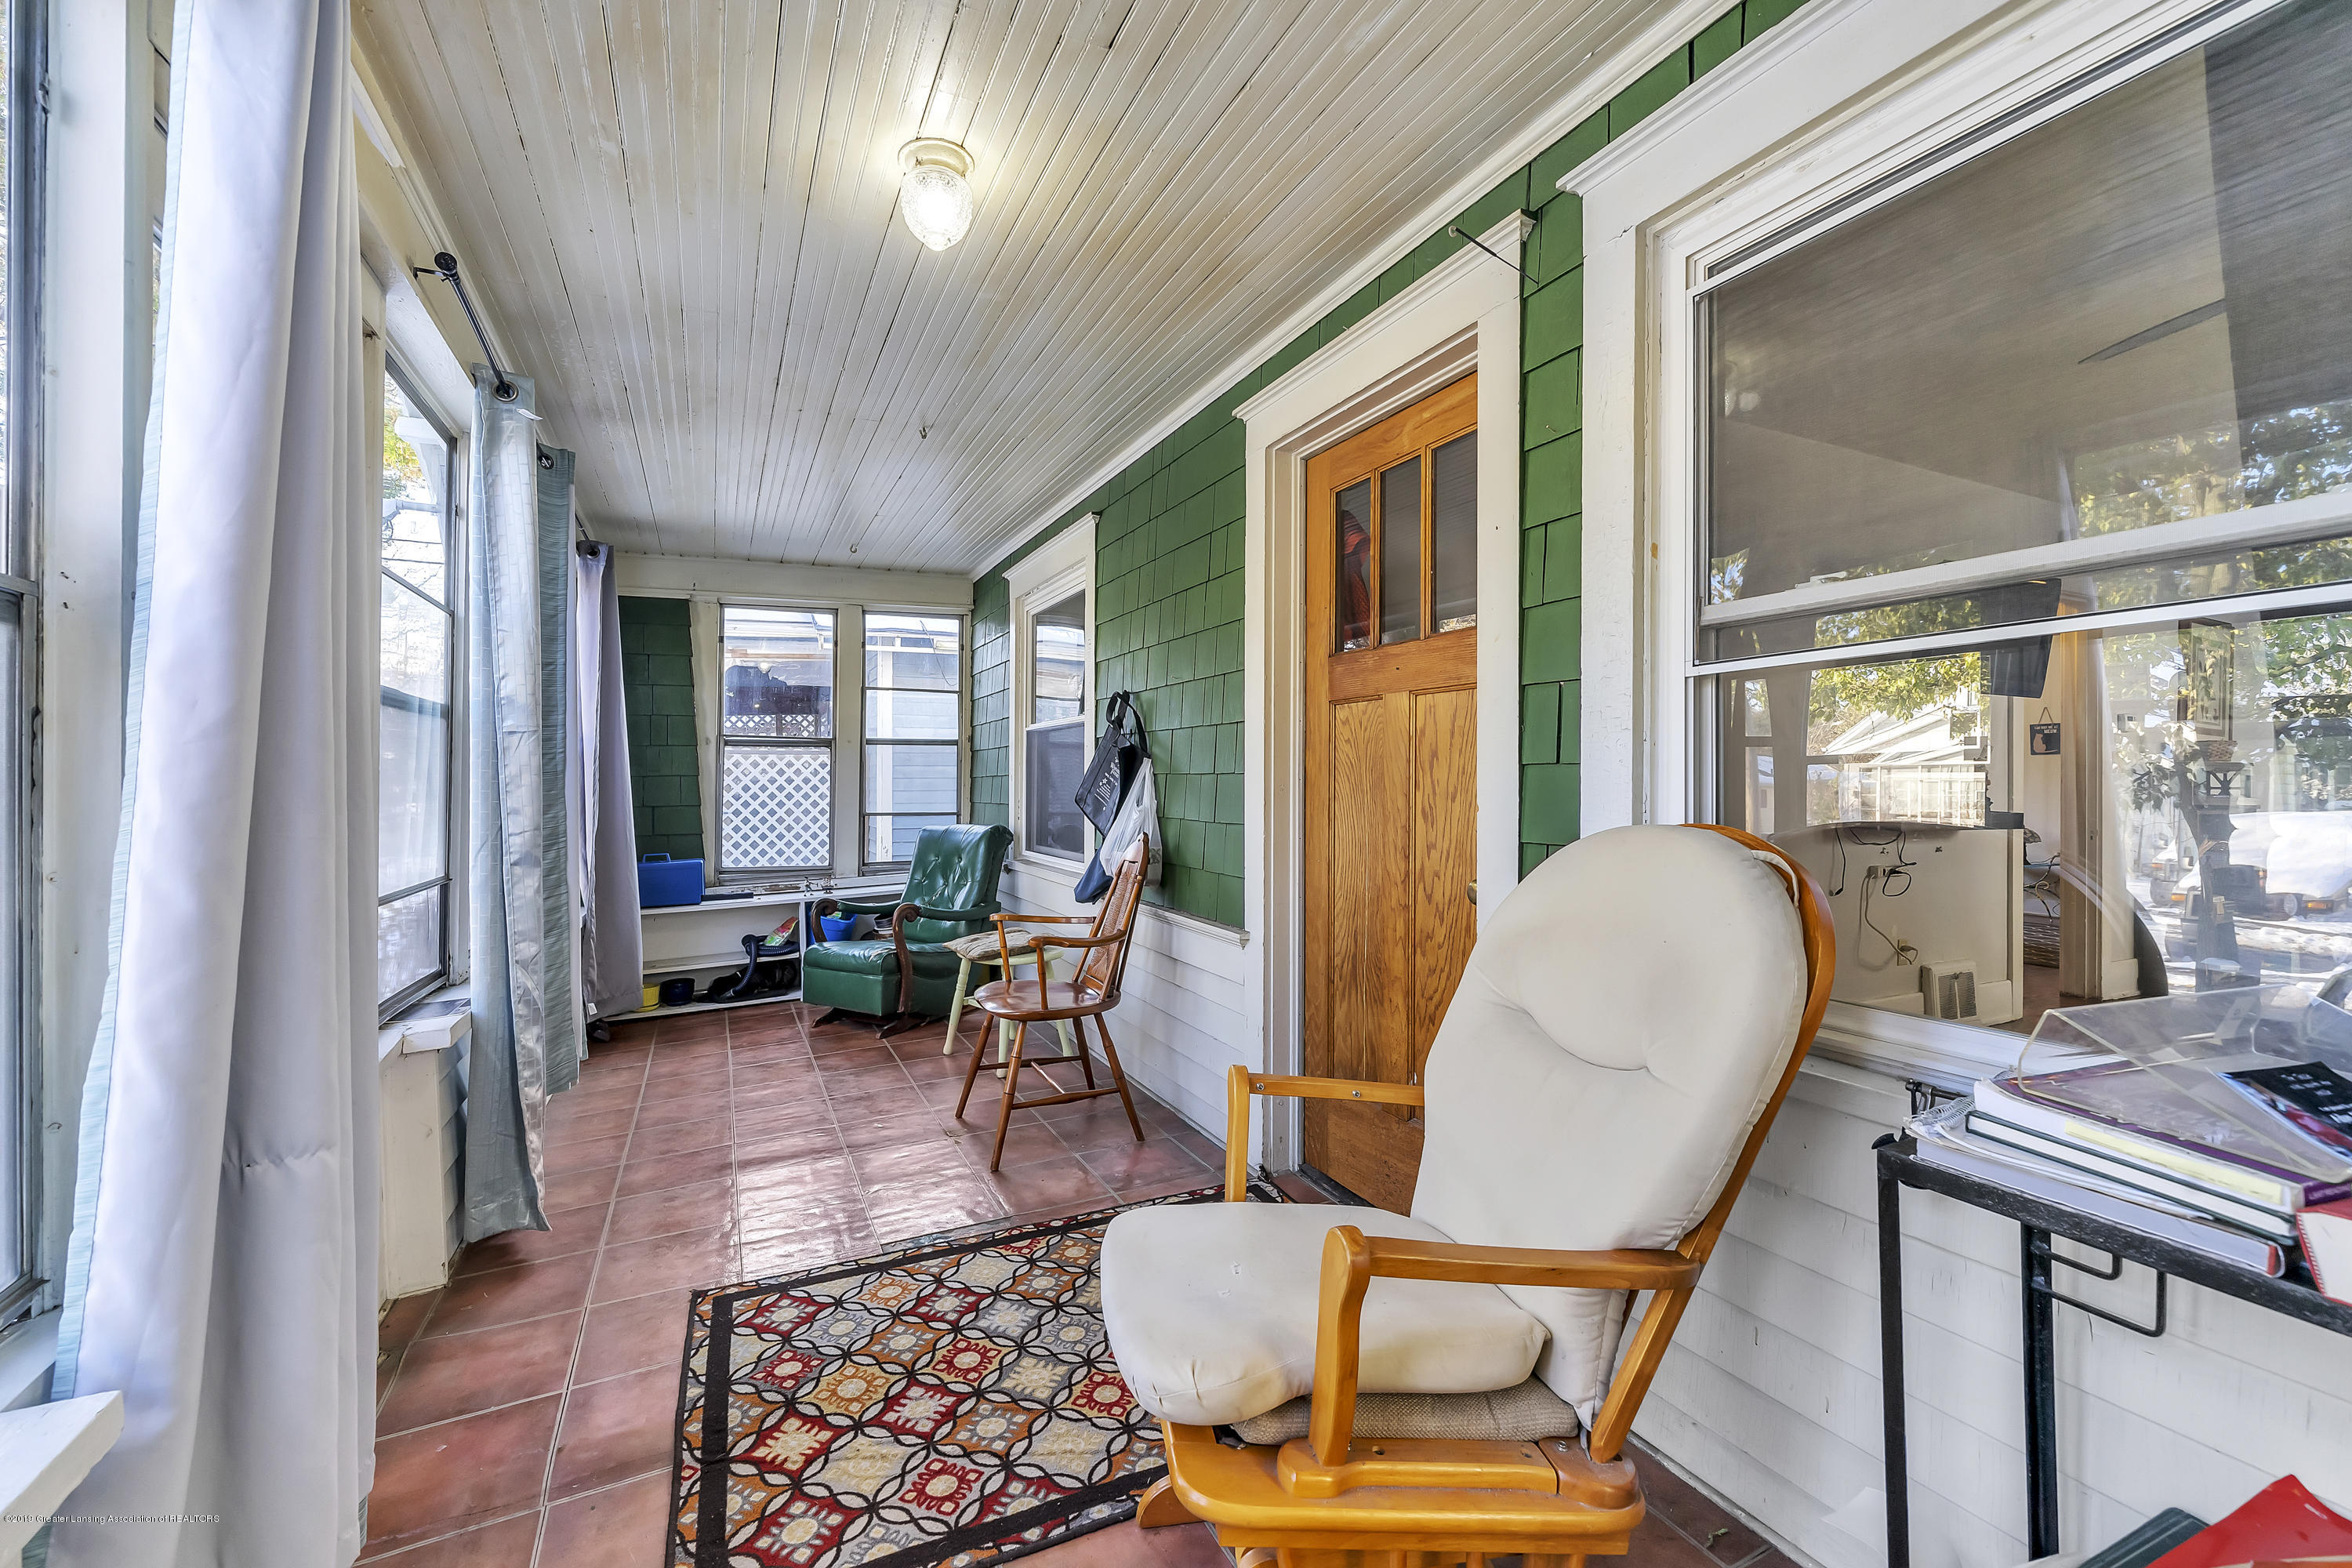 1004 S Holmes St - 1004-S-Holmes-st-WindowStill-Real-Estate - 6